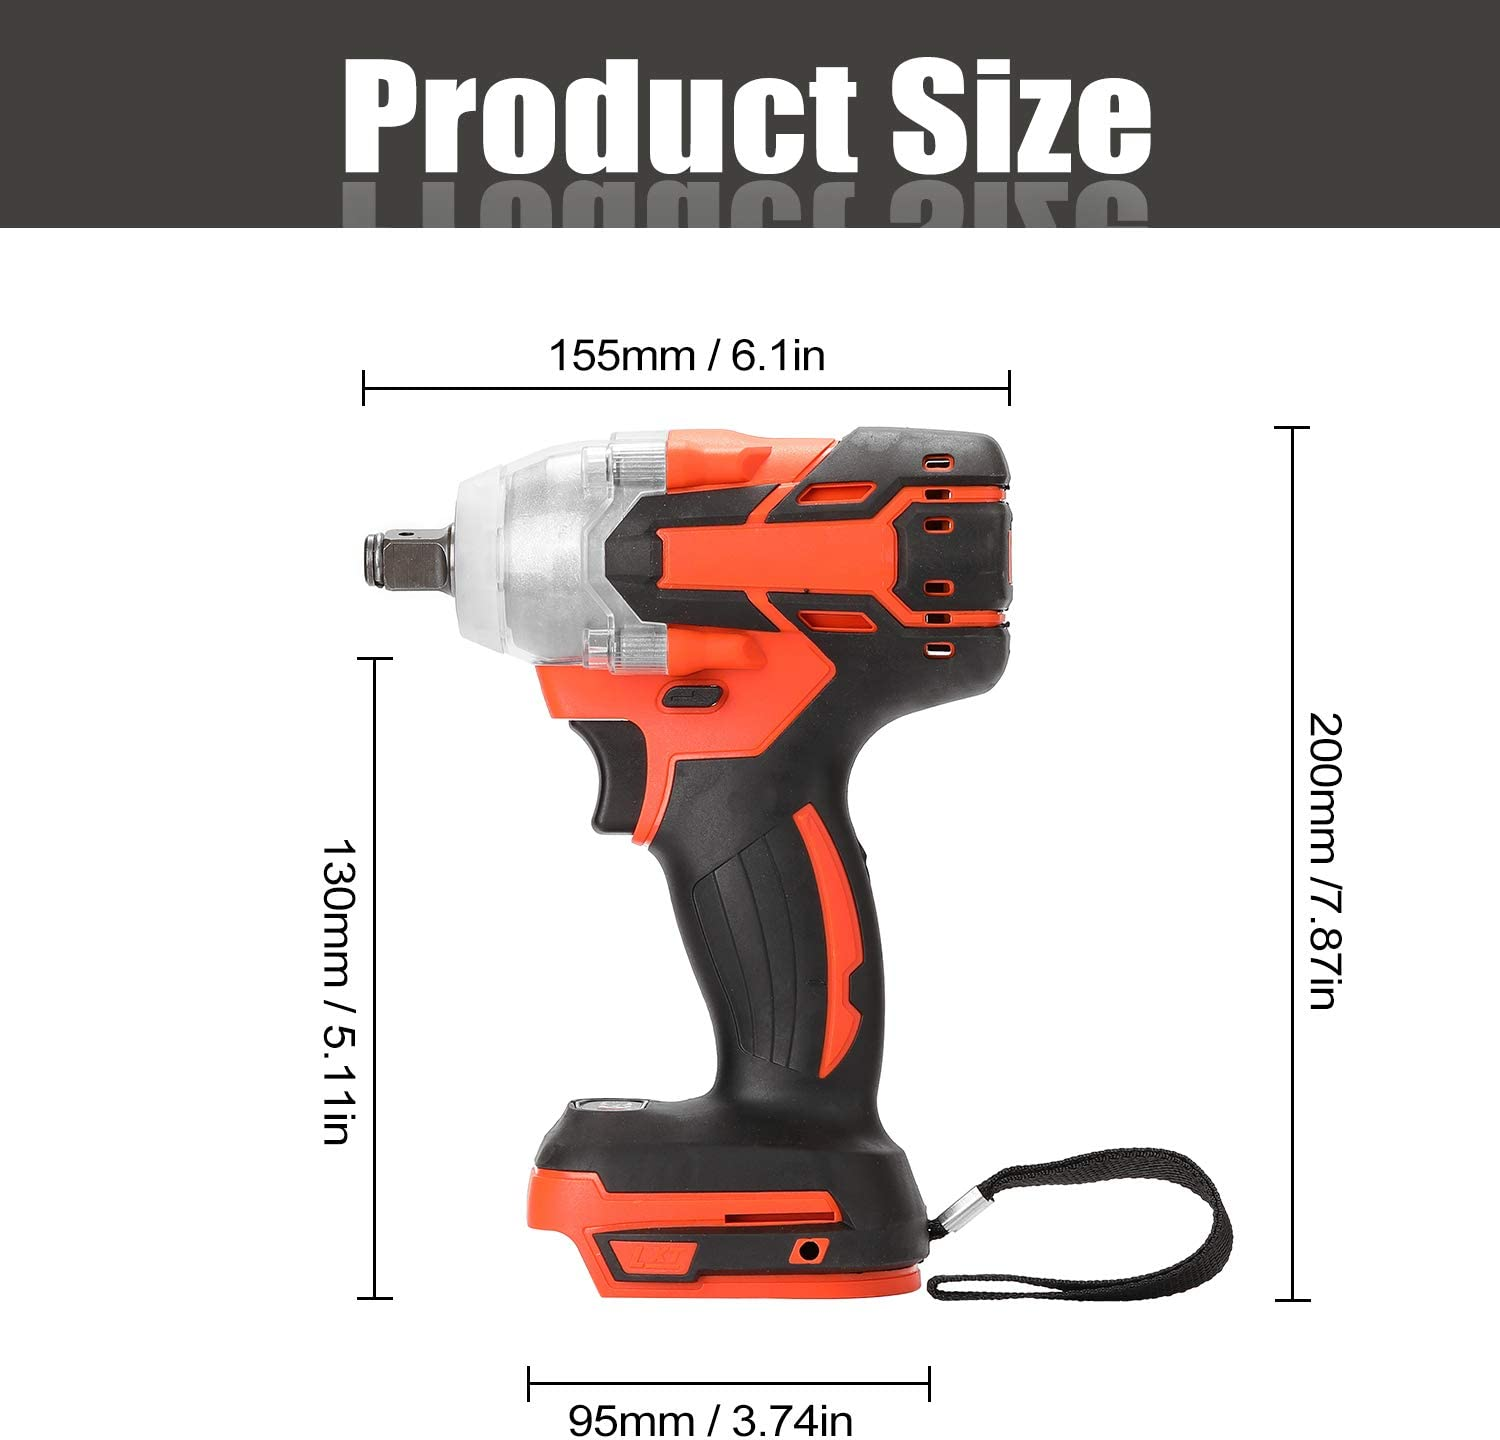 Extaum Electric Wrench,Electric Rechargeable Cordless Brushless Impact Wrench Multifunctional Wireless Electric Hand Wrench Home DIY Electric Power Tools